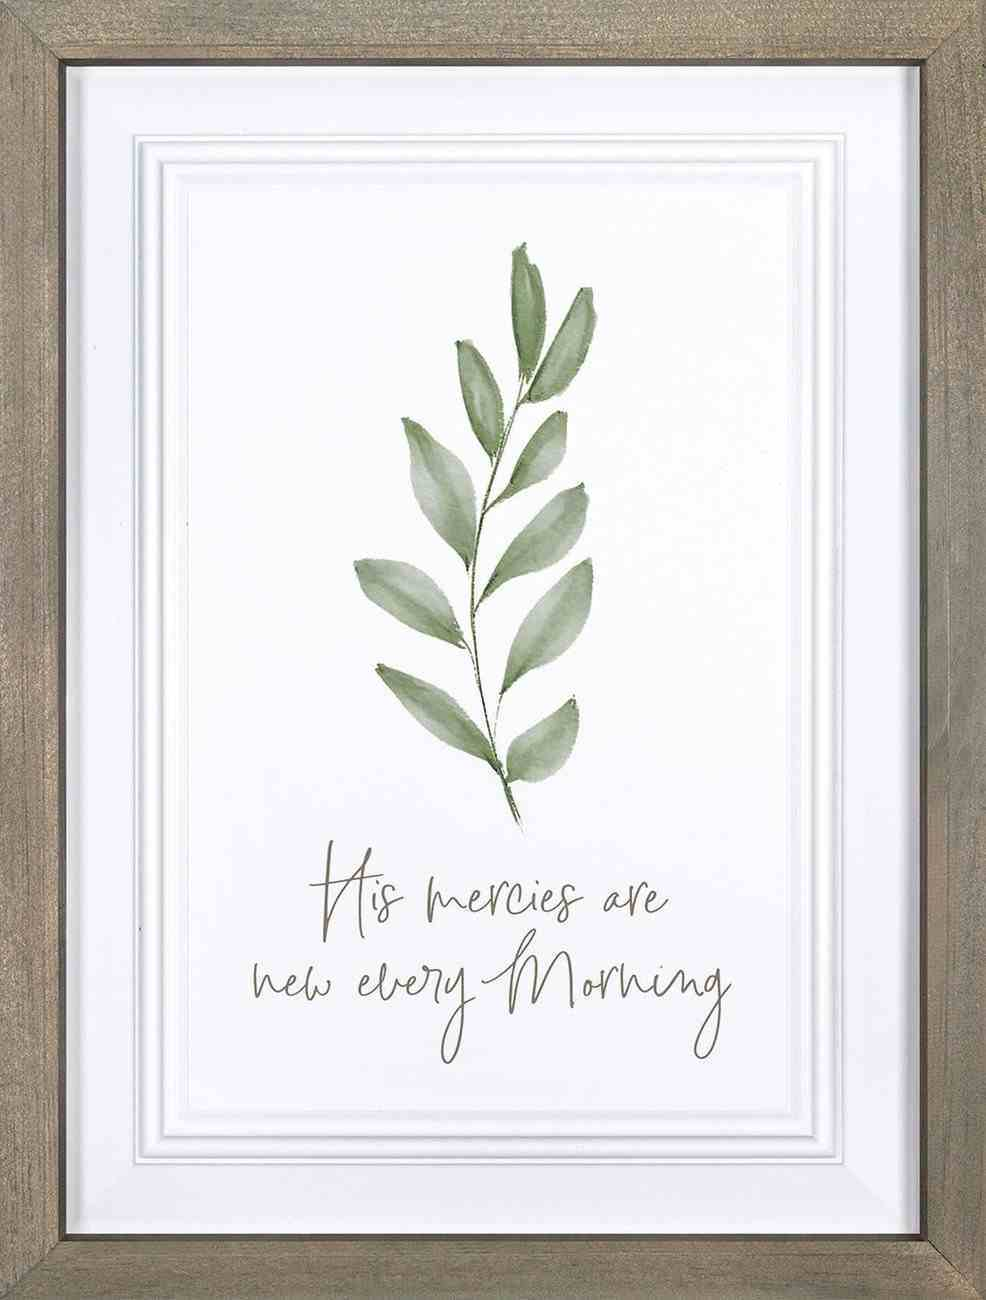 Framed Wall Art: His Mercies Are New Every Morning (Mdf/pine) Plaque